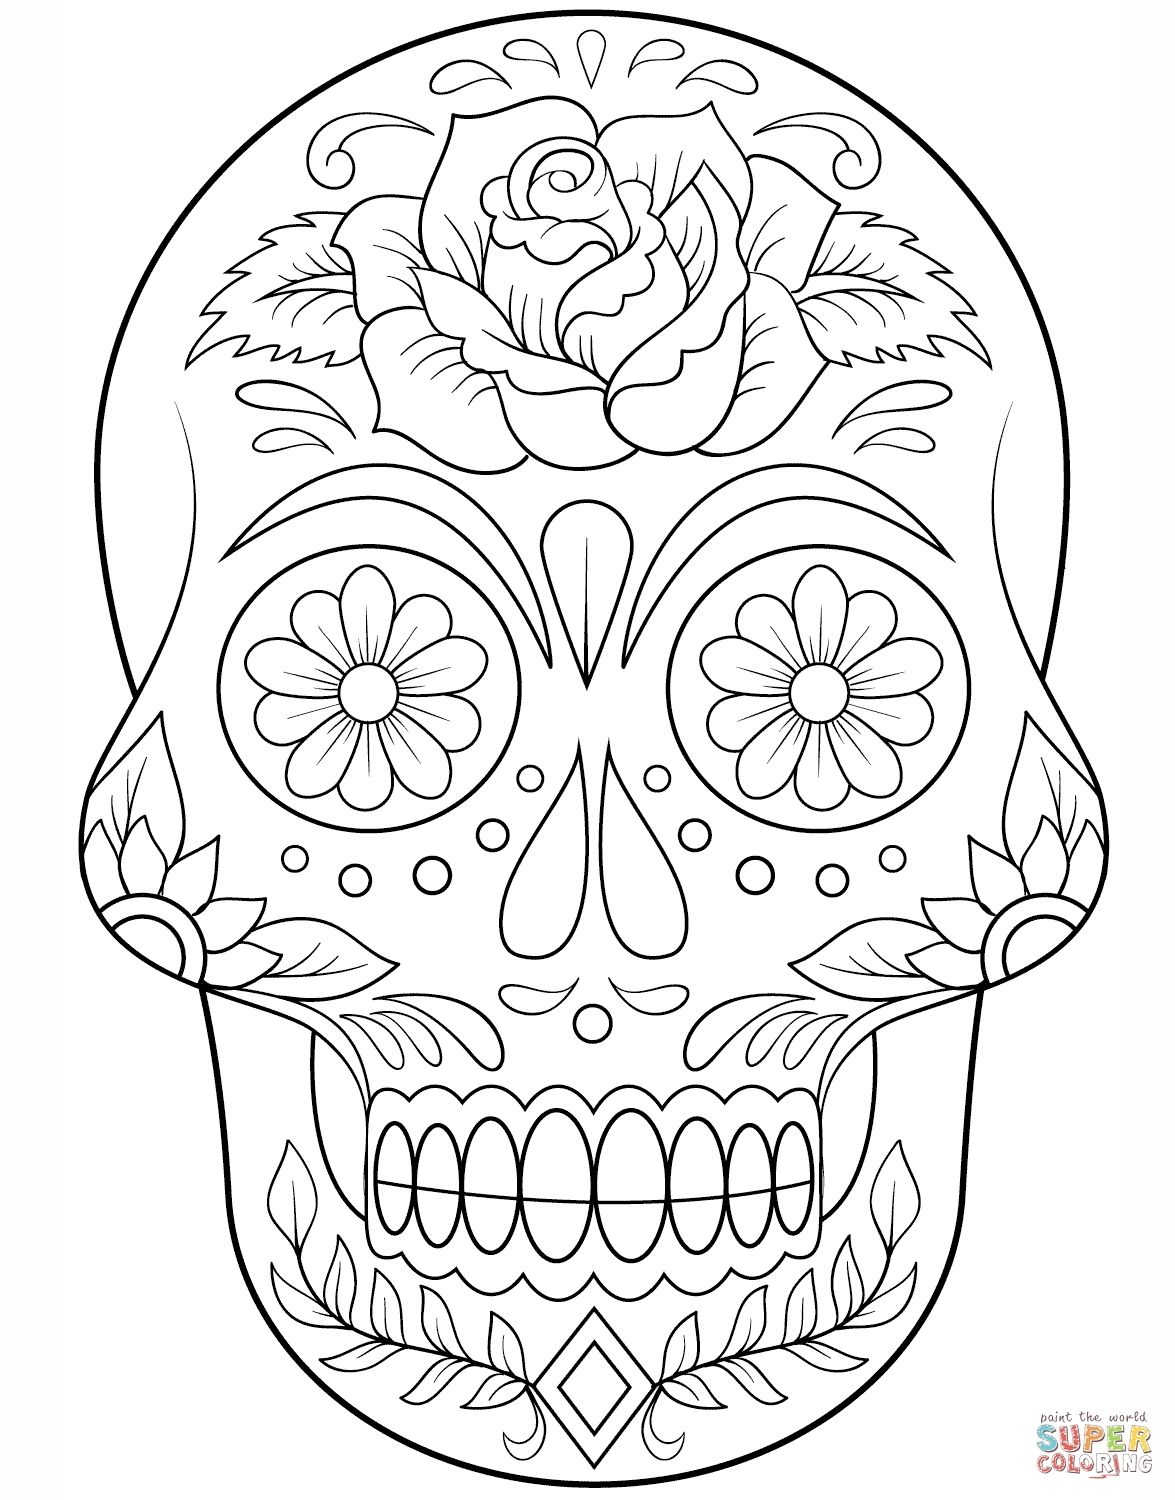 simple sugar skull coloring pages - 7 - t - Sugar Skull with ...